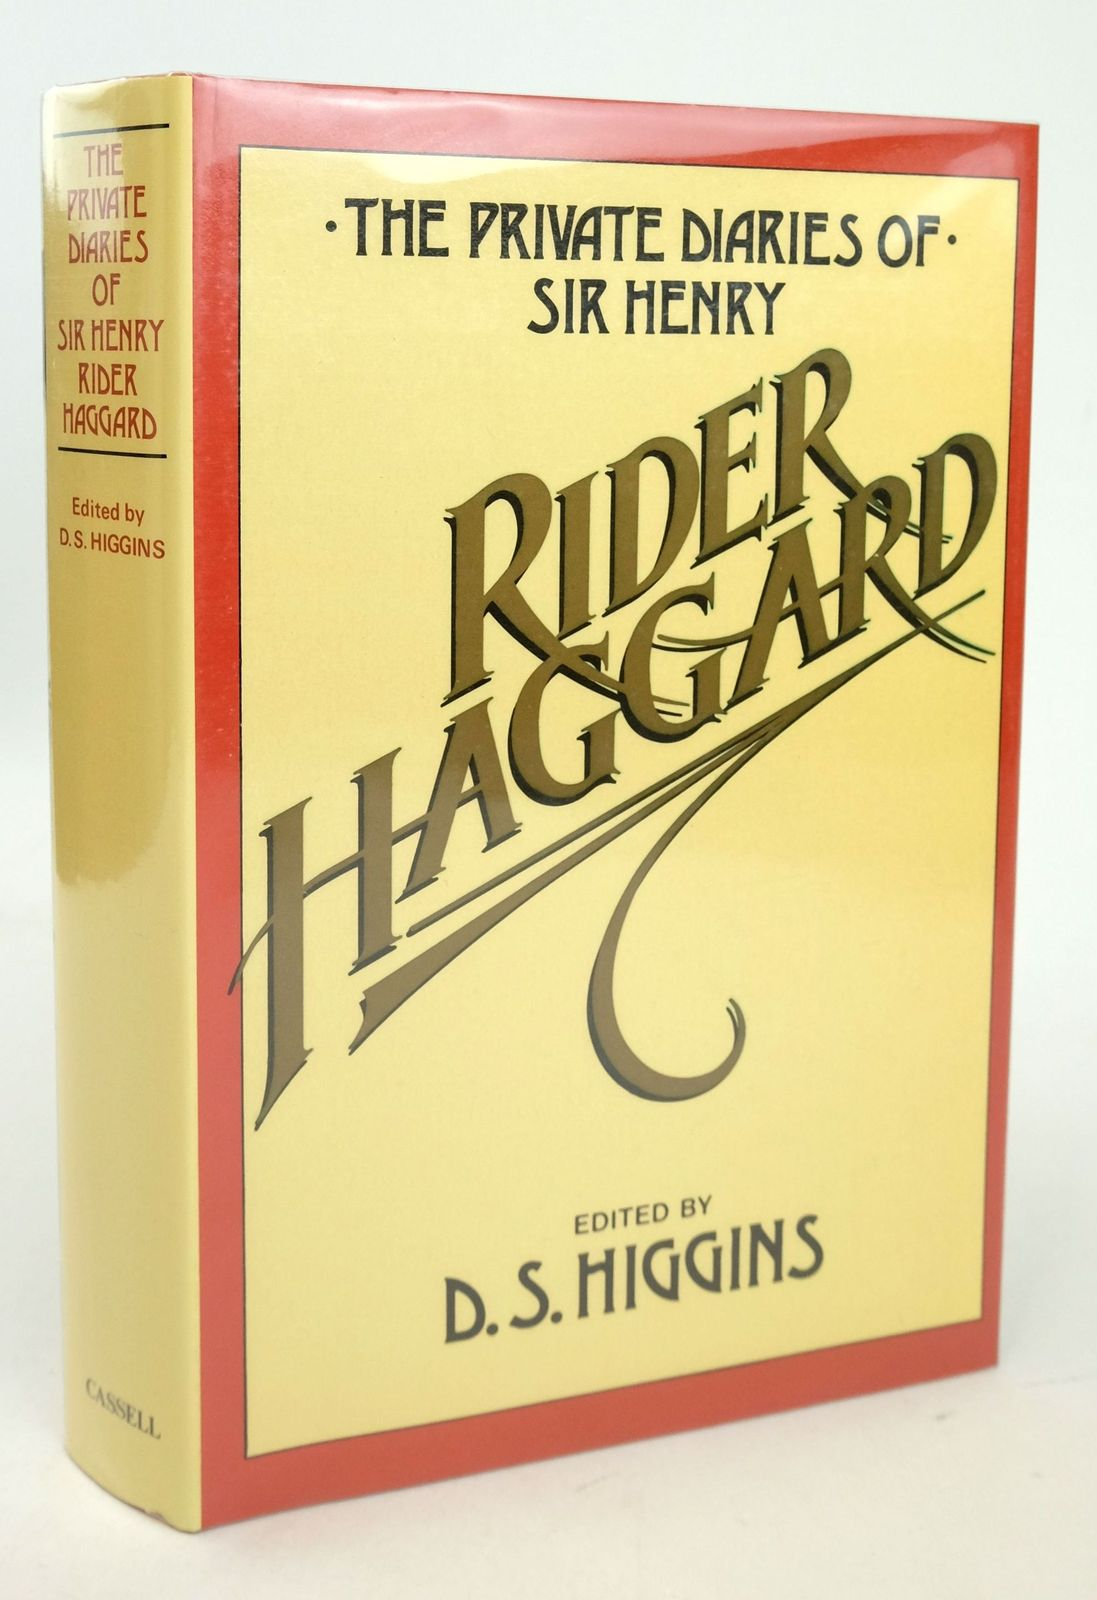 Photo of THE PRIVATE DIARIES OF SIR H RIDER HAGGARD 1914-1925 written by Higgins, D.S. published by Cassell (STOCK CODE: 1819587)  for sale by Stella & Rose's Books